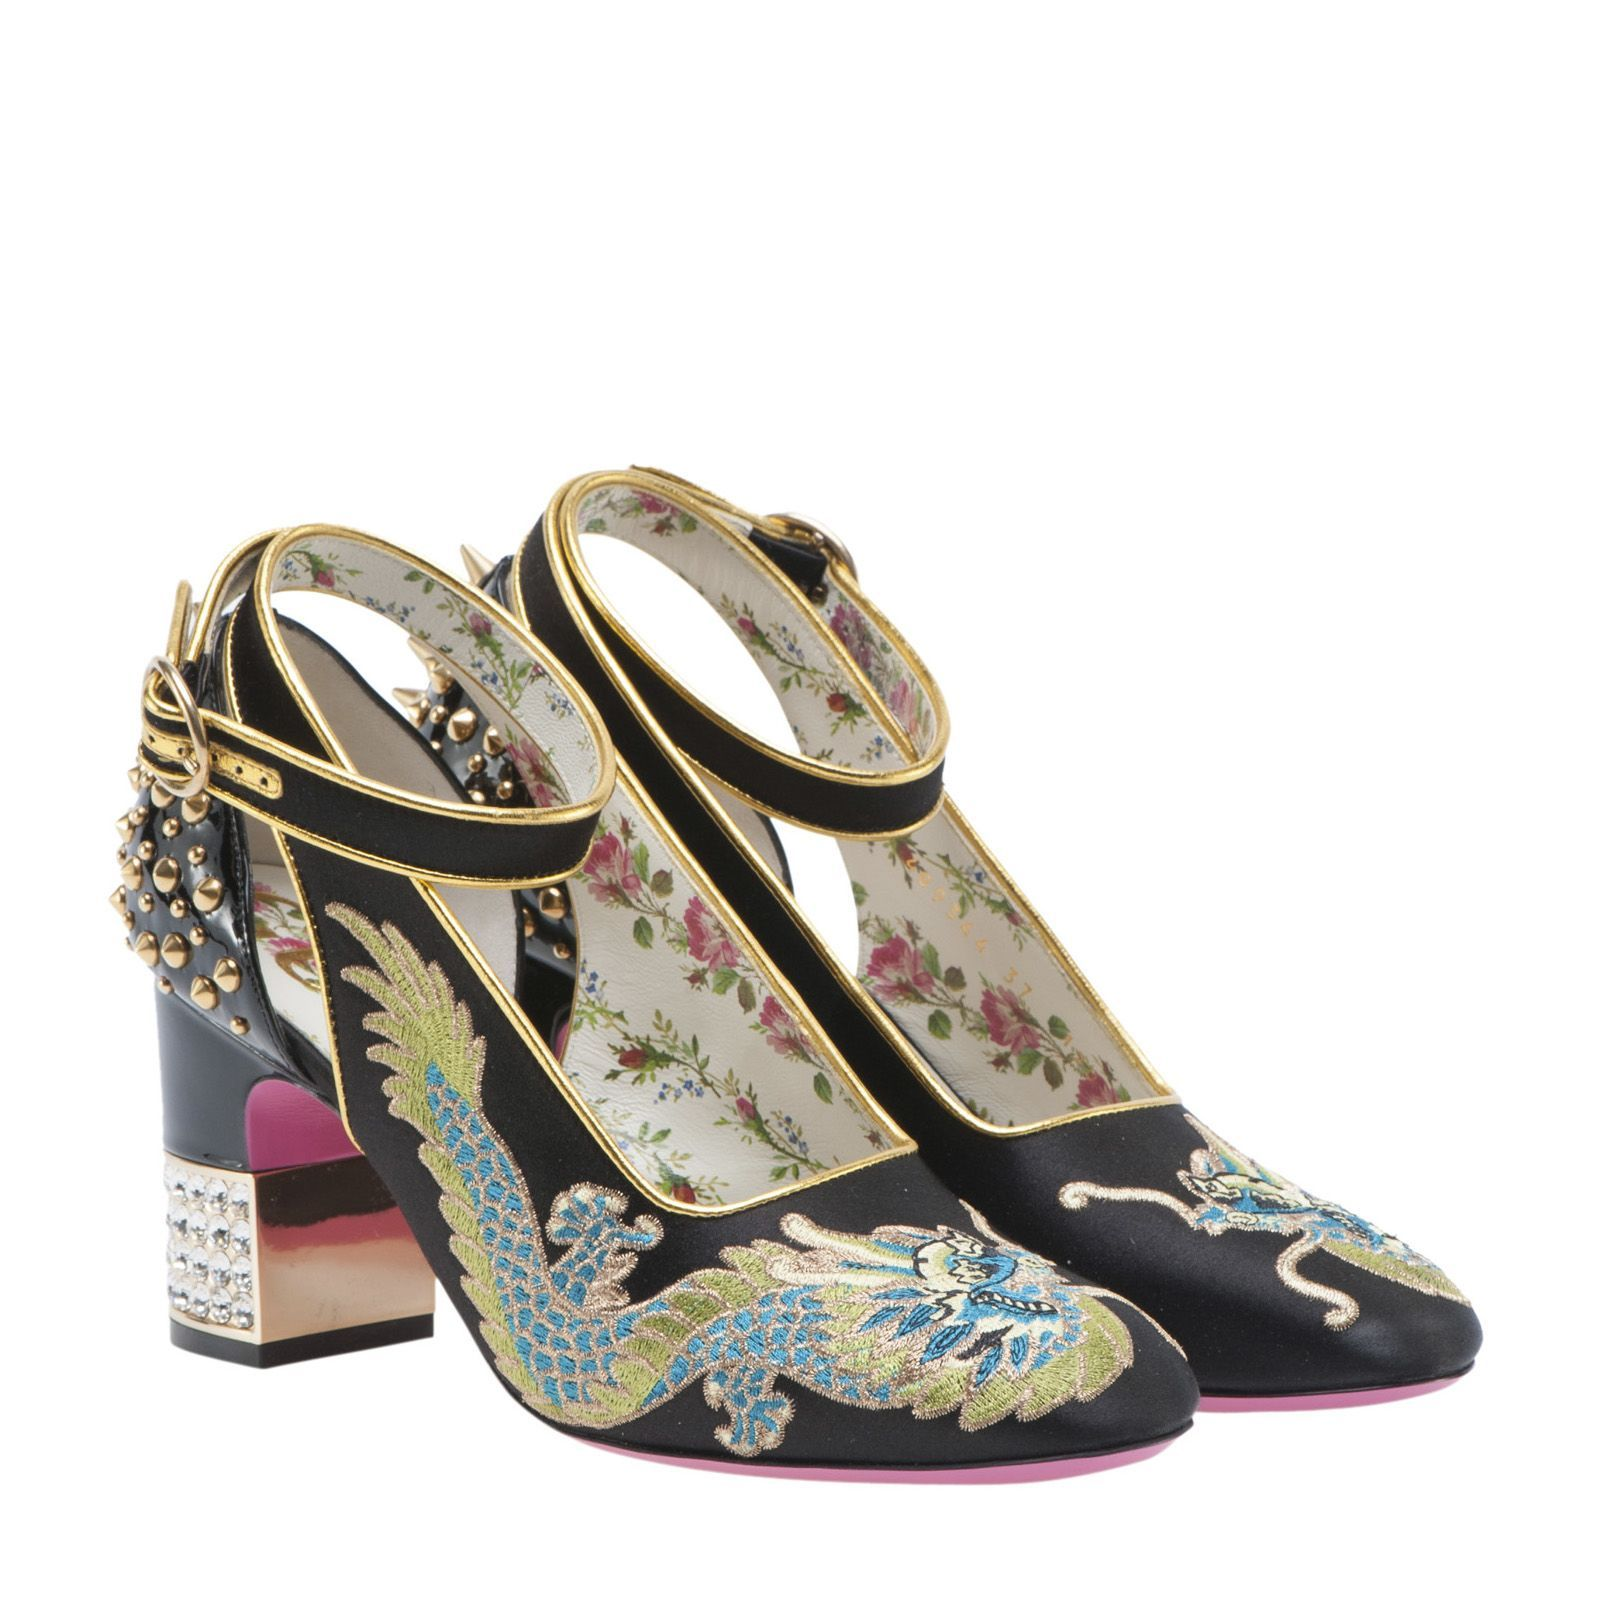 292b8d0d23f  gucci  shoes   Sale! Up to 75% OFF! Shop at Stylizio for women s and men s  designer handbags